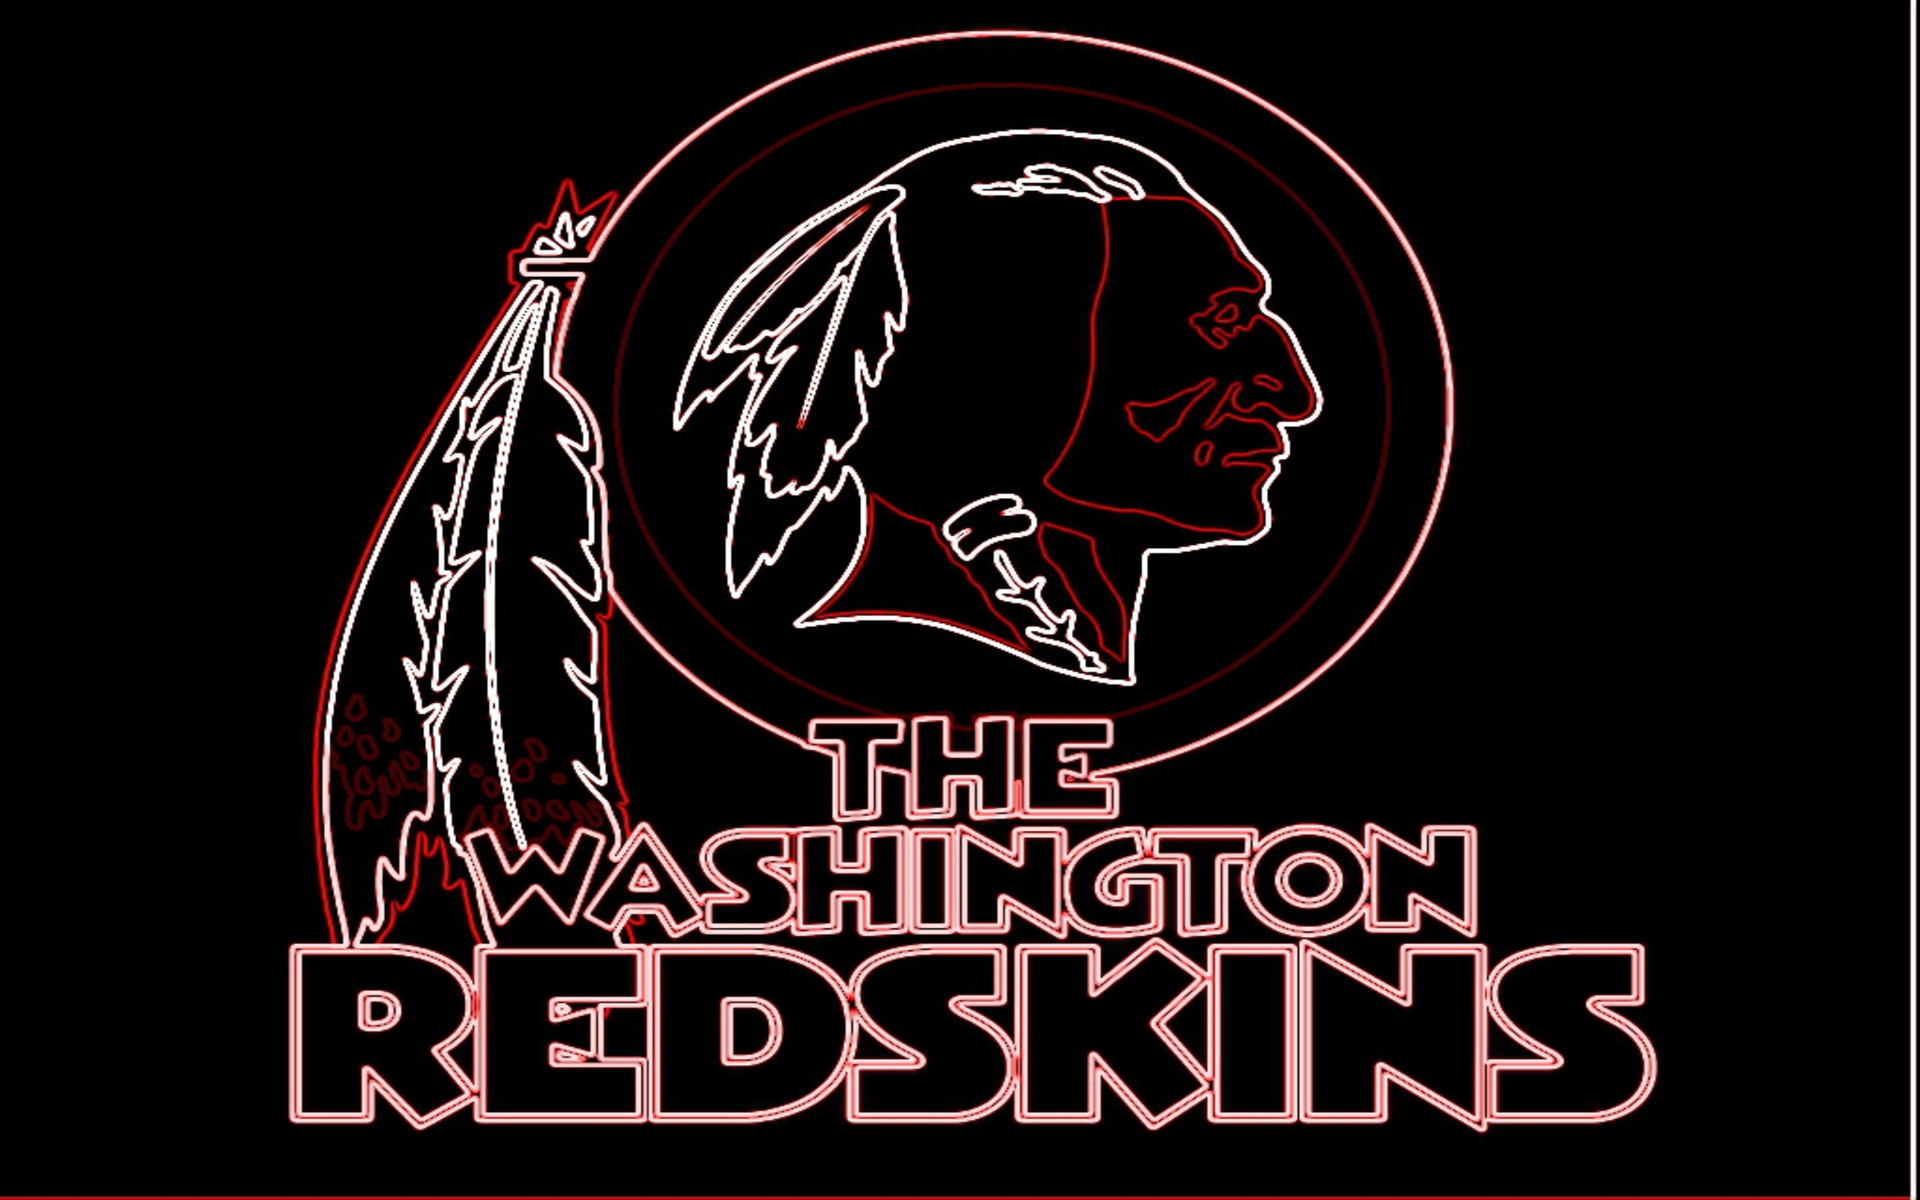 WASHINGTON REDSKINS nfl football d wallpaper 1920x1200 1920x1200